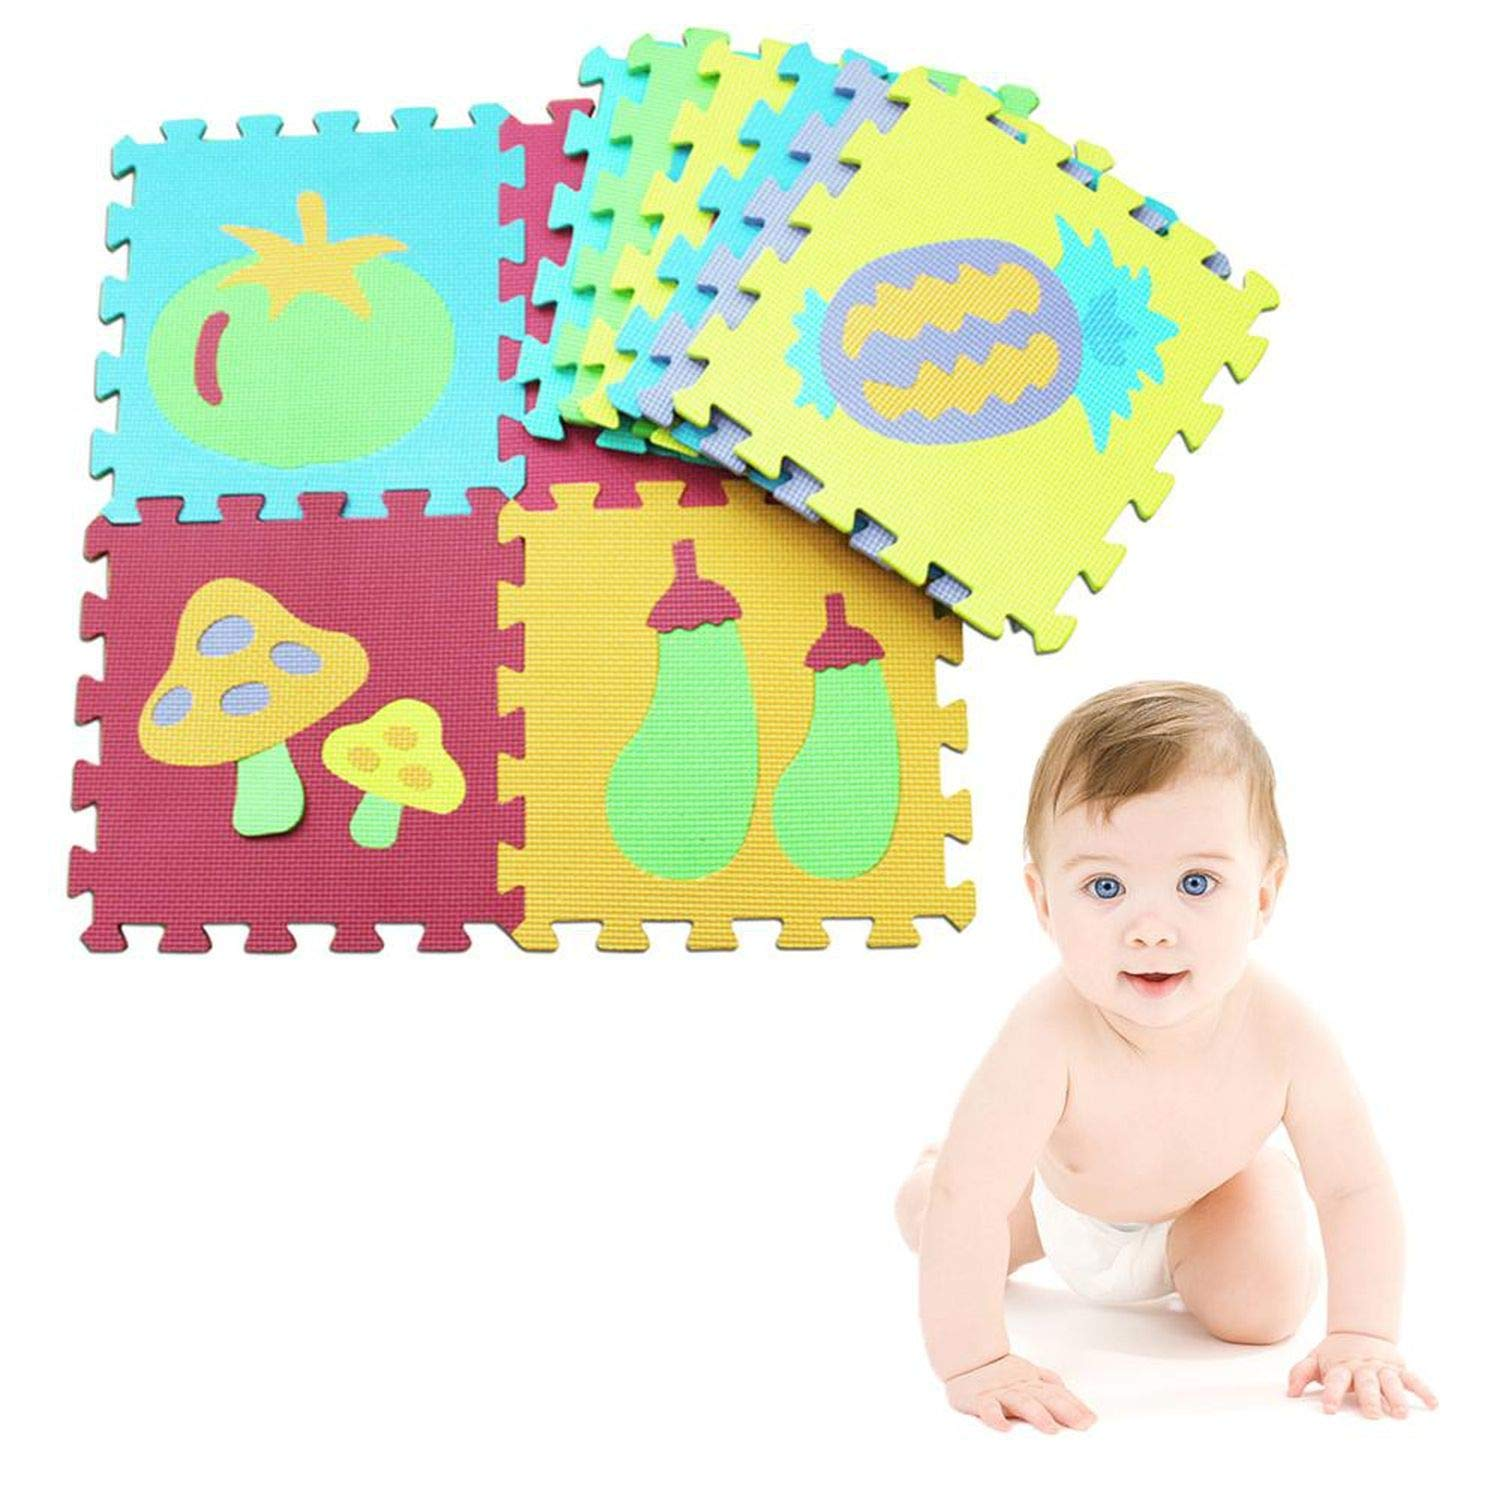 10pcs Safty Foam Numbers Letters Play Mat Foam Puzzle Floor Kid Crawling Carpet